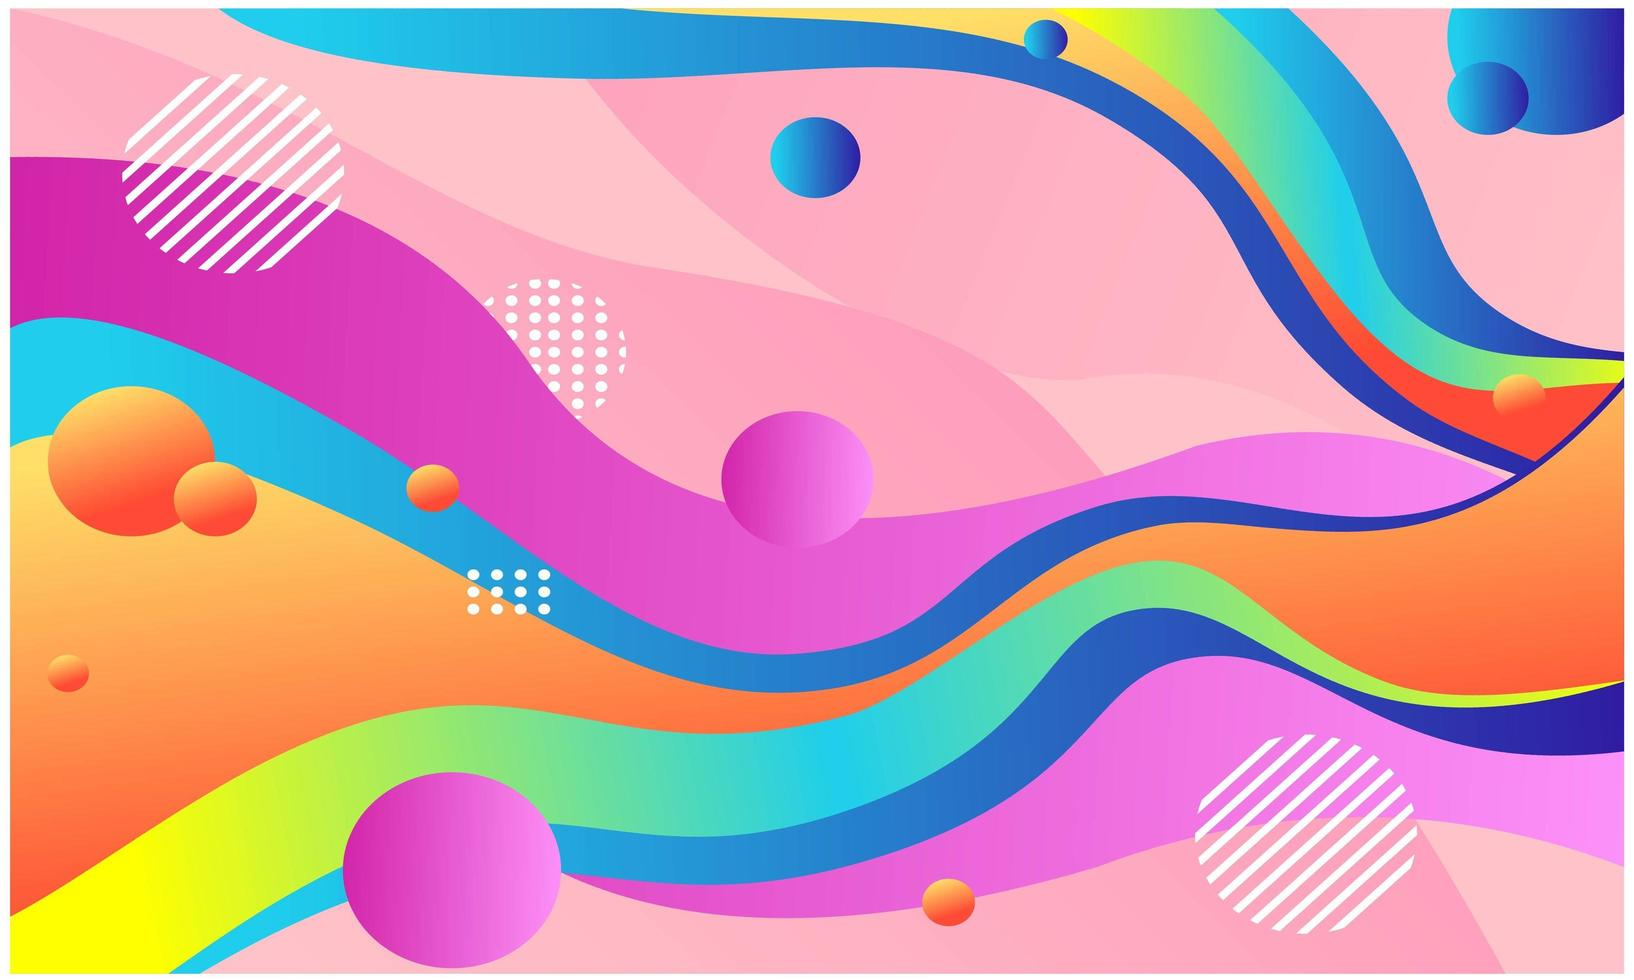 Colorful flow background. Abstract colorful shapes background vector